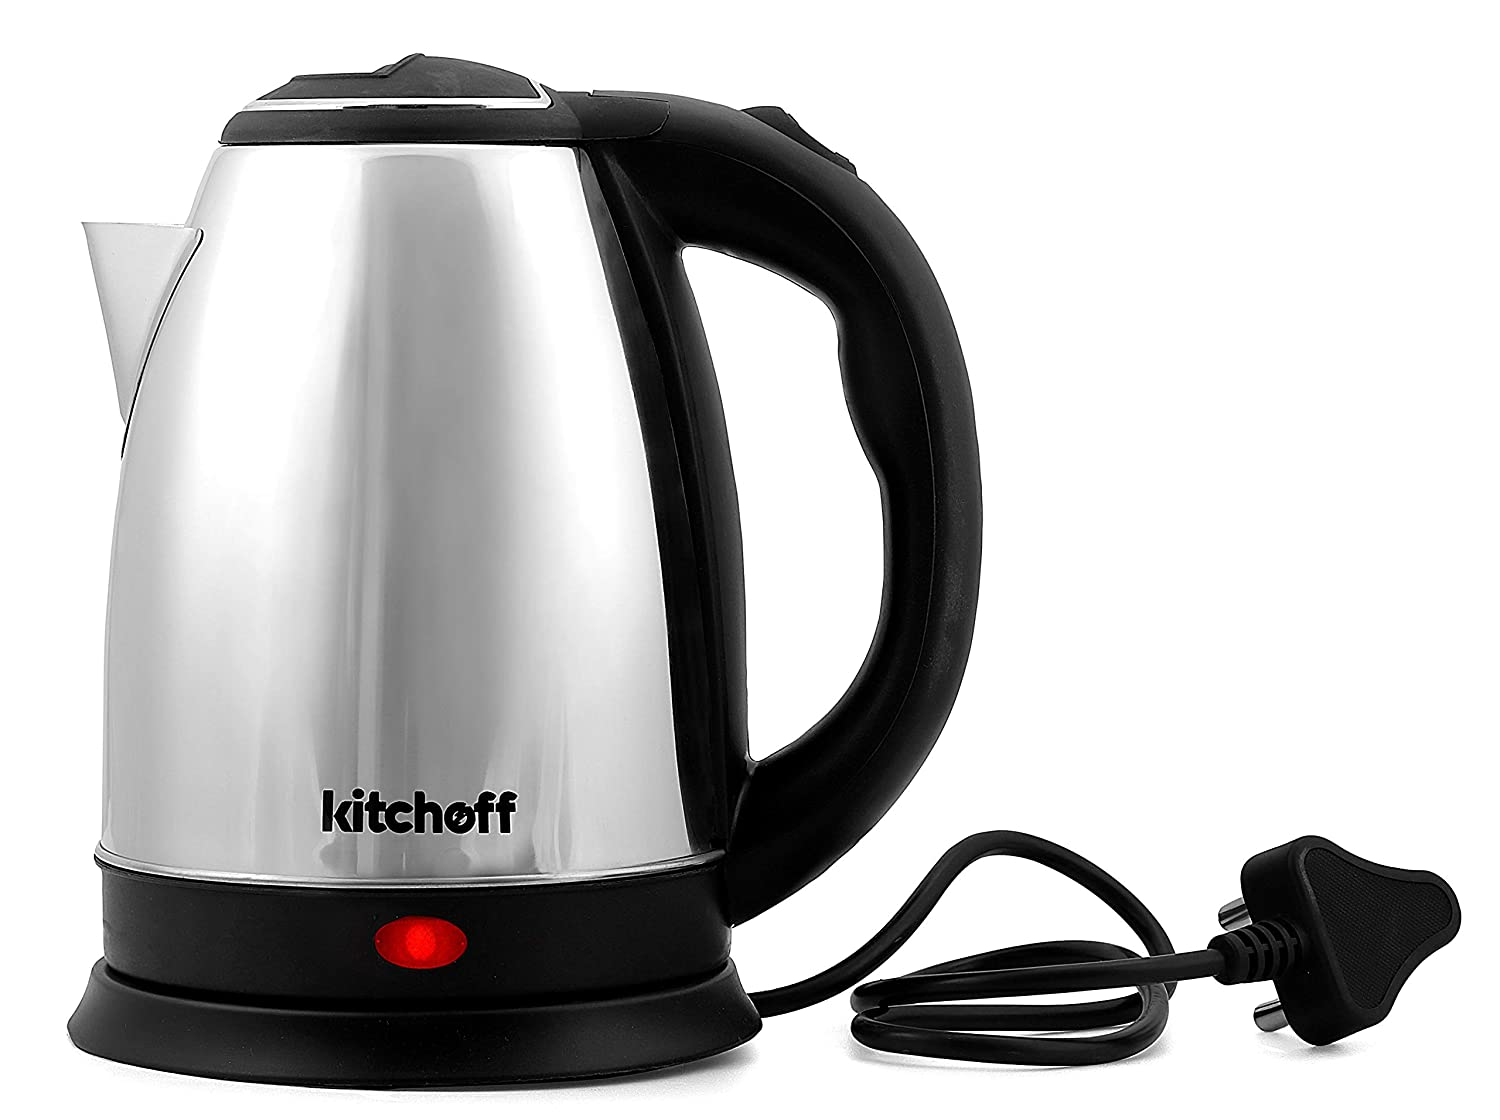 Best electric kettle for boiling milk